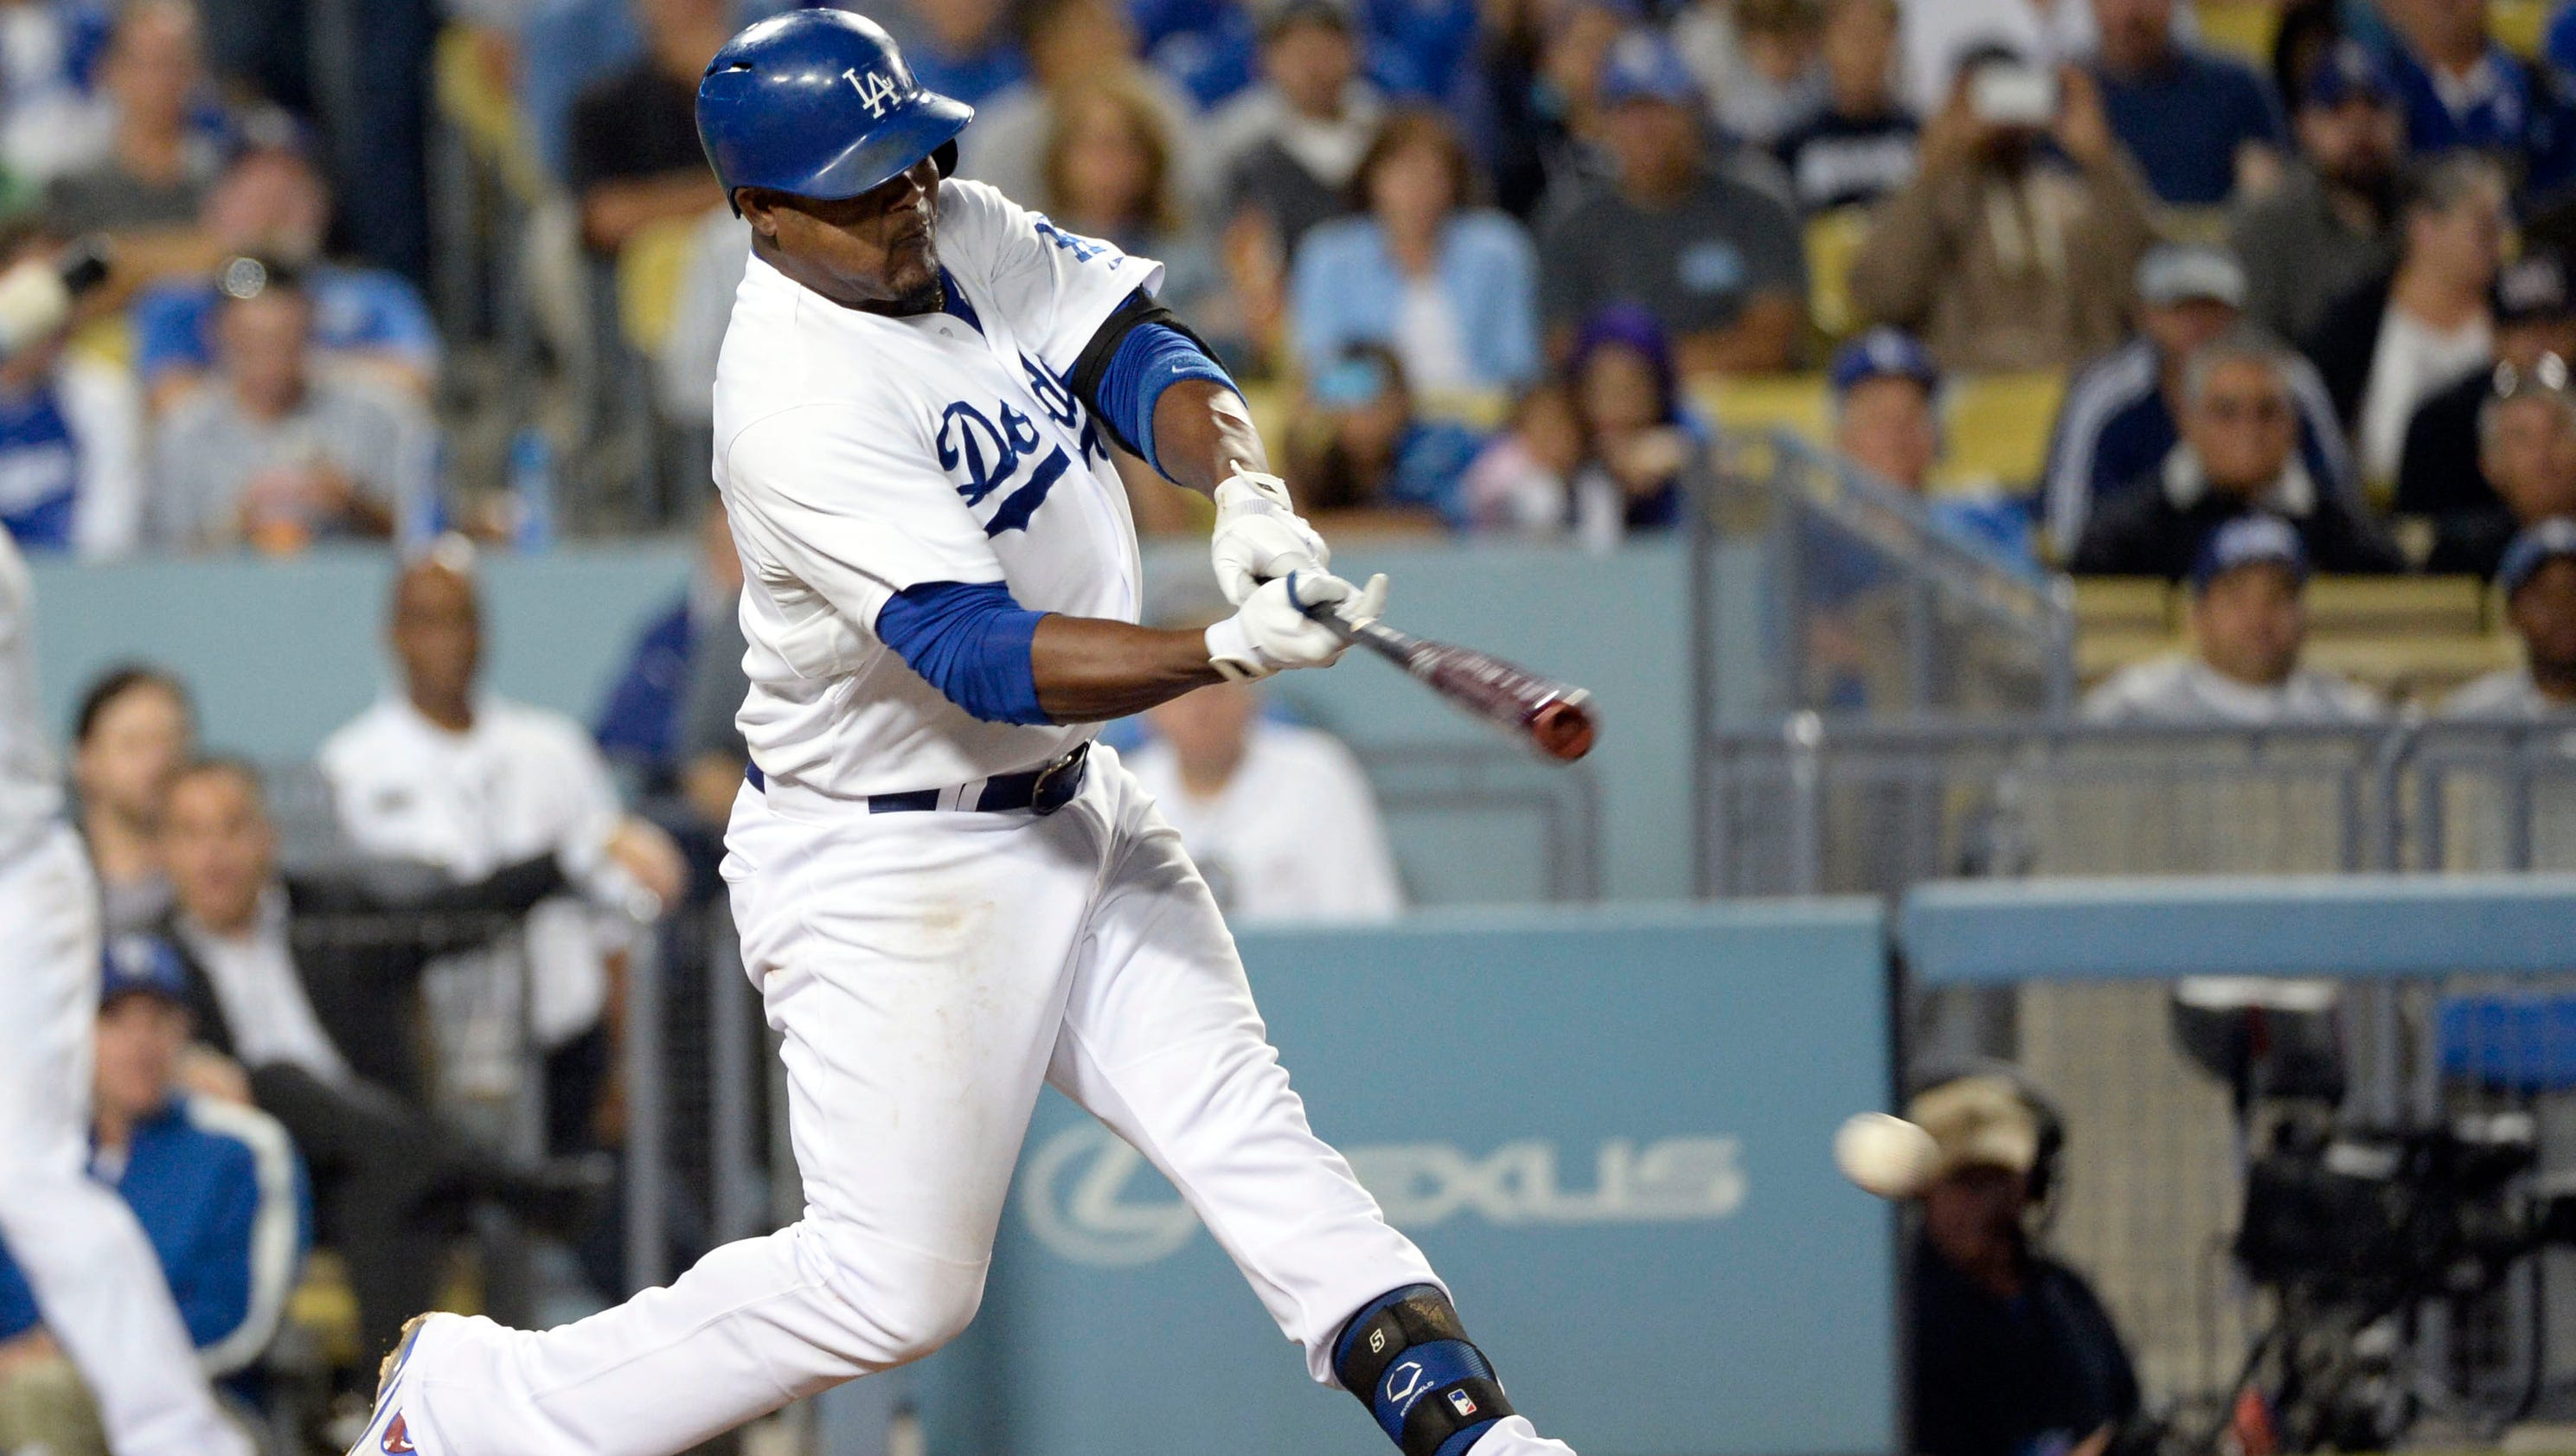 Juan Uribe hits 3 HRs in Dodgers' win over D-backs